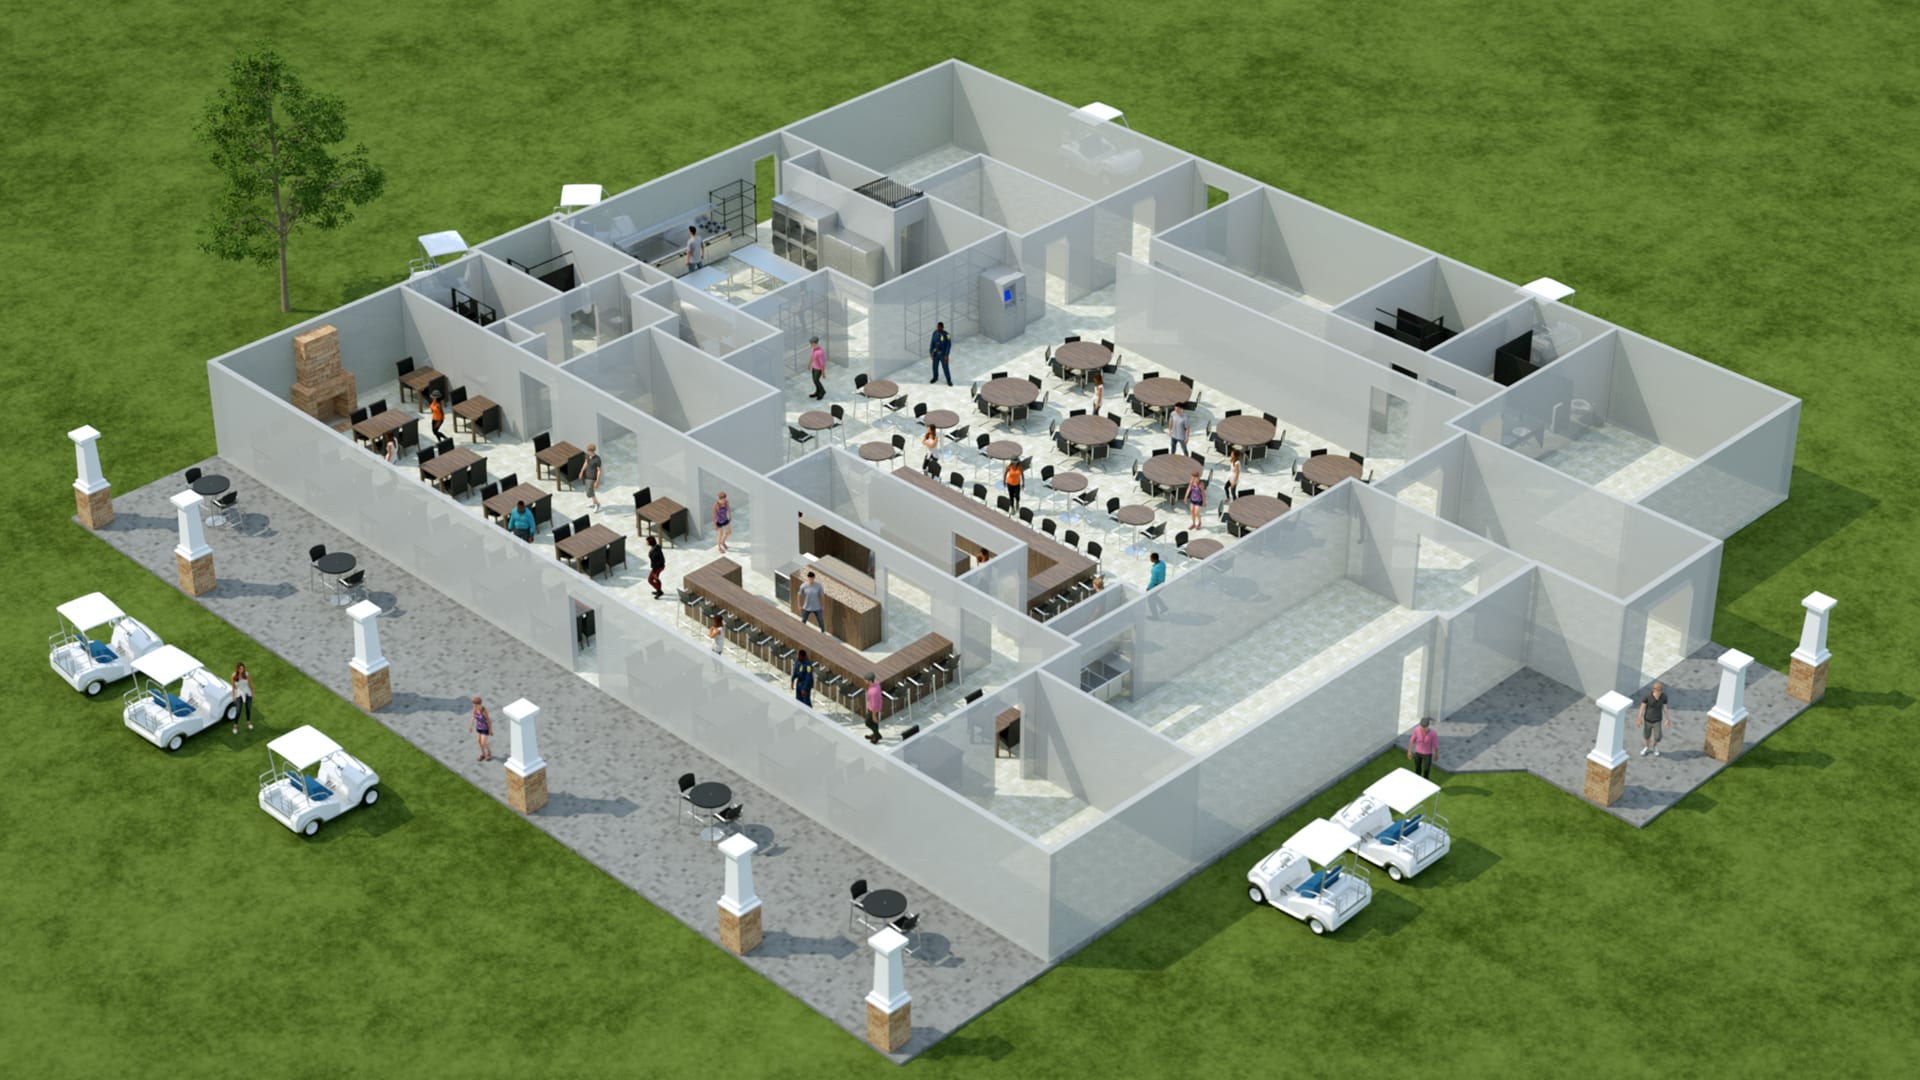 3D detailed floor plan with people and furnishings